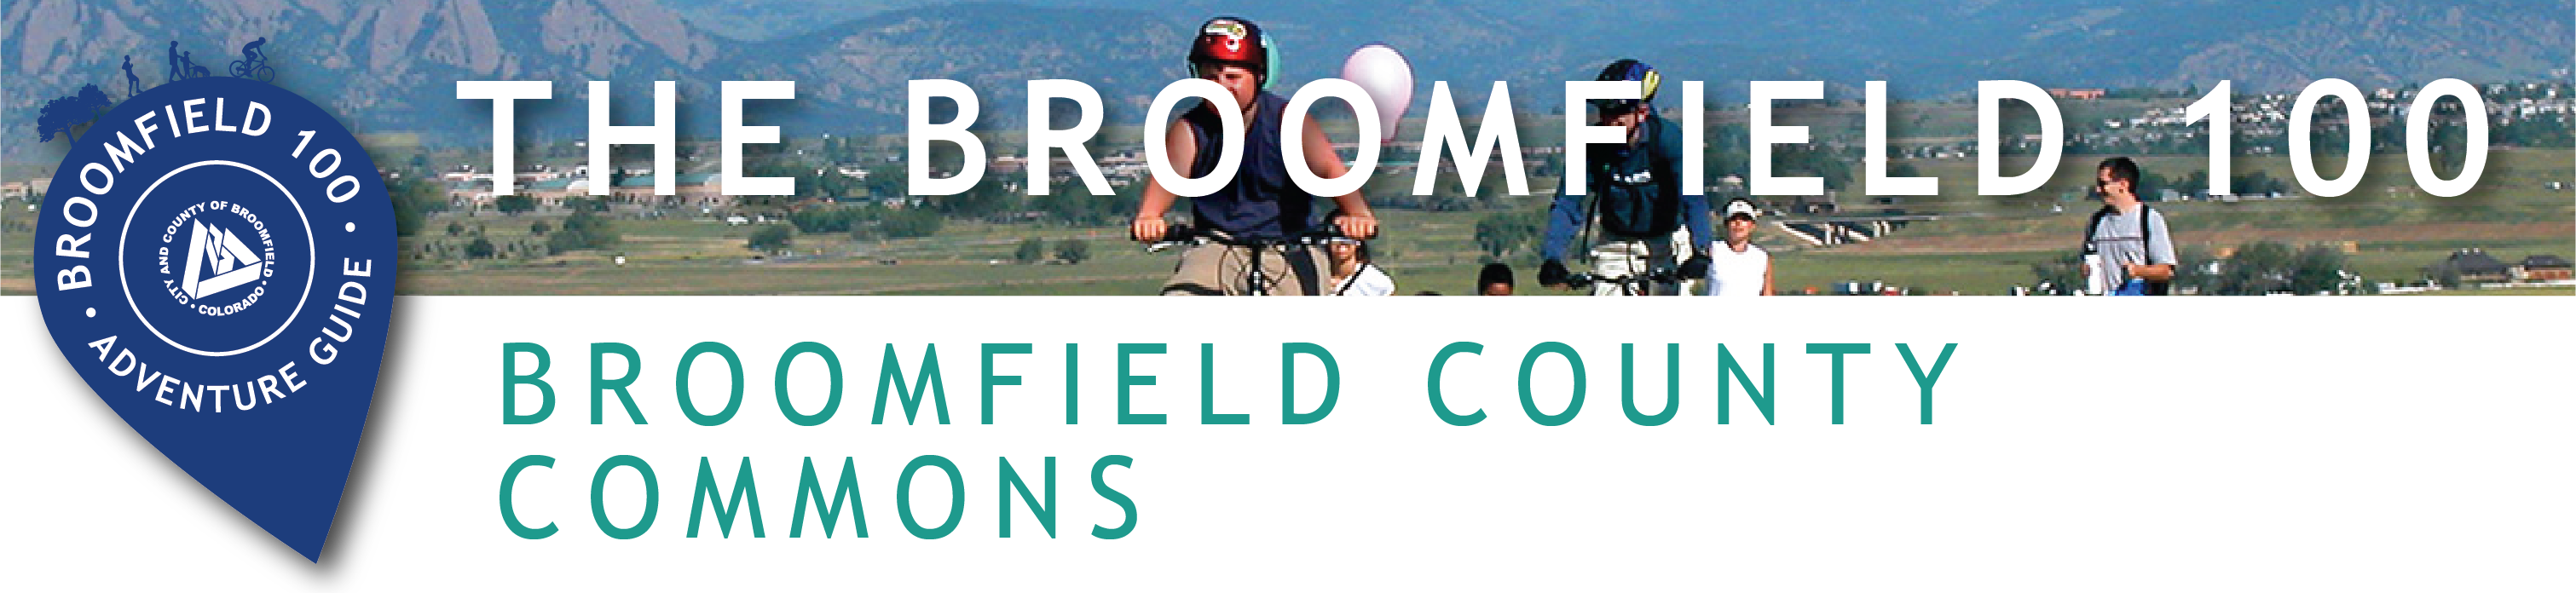 2019 Broomfield100 web banners_broomfield county commons